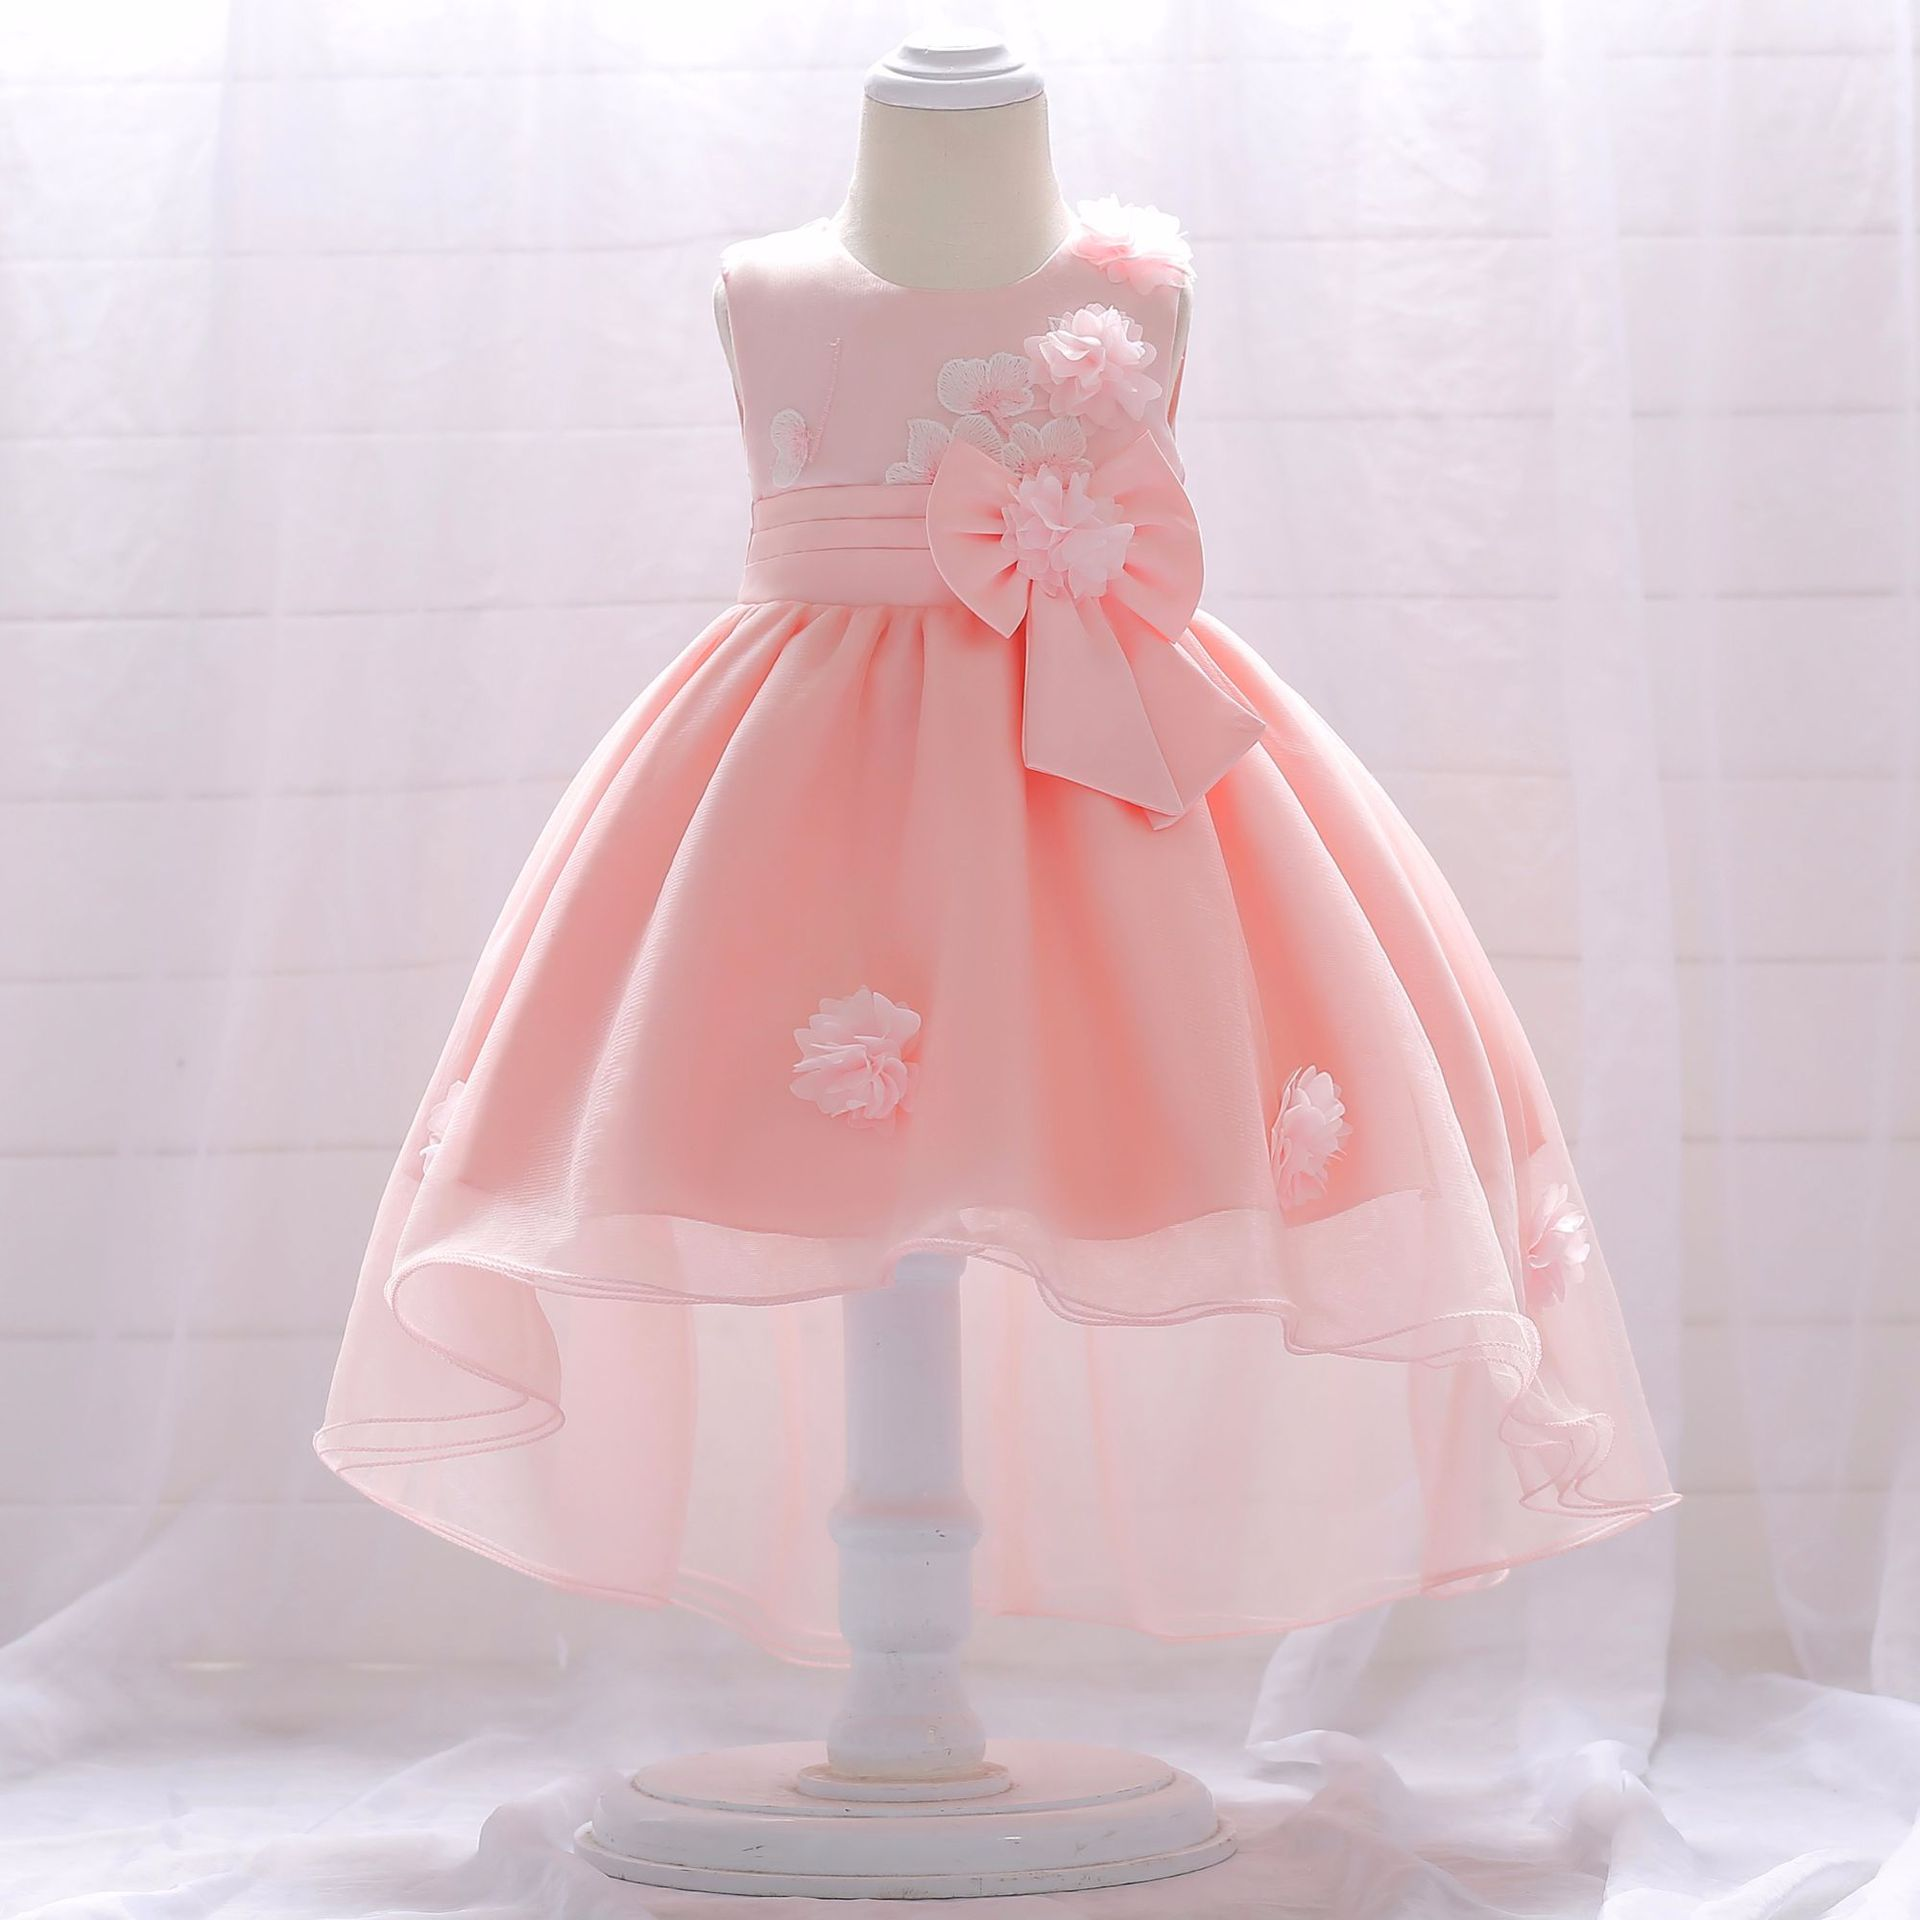 2019 New Style Baby A Year Of Age Wash Formal Dress Infant BABY'S FIRST Month Birthday Gift Tailing Flower Puffy Princess Dress